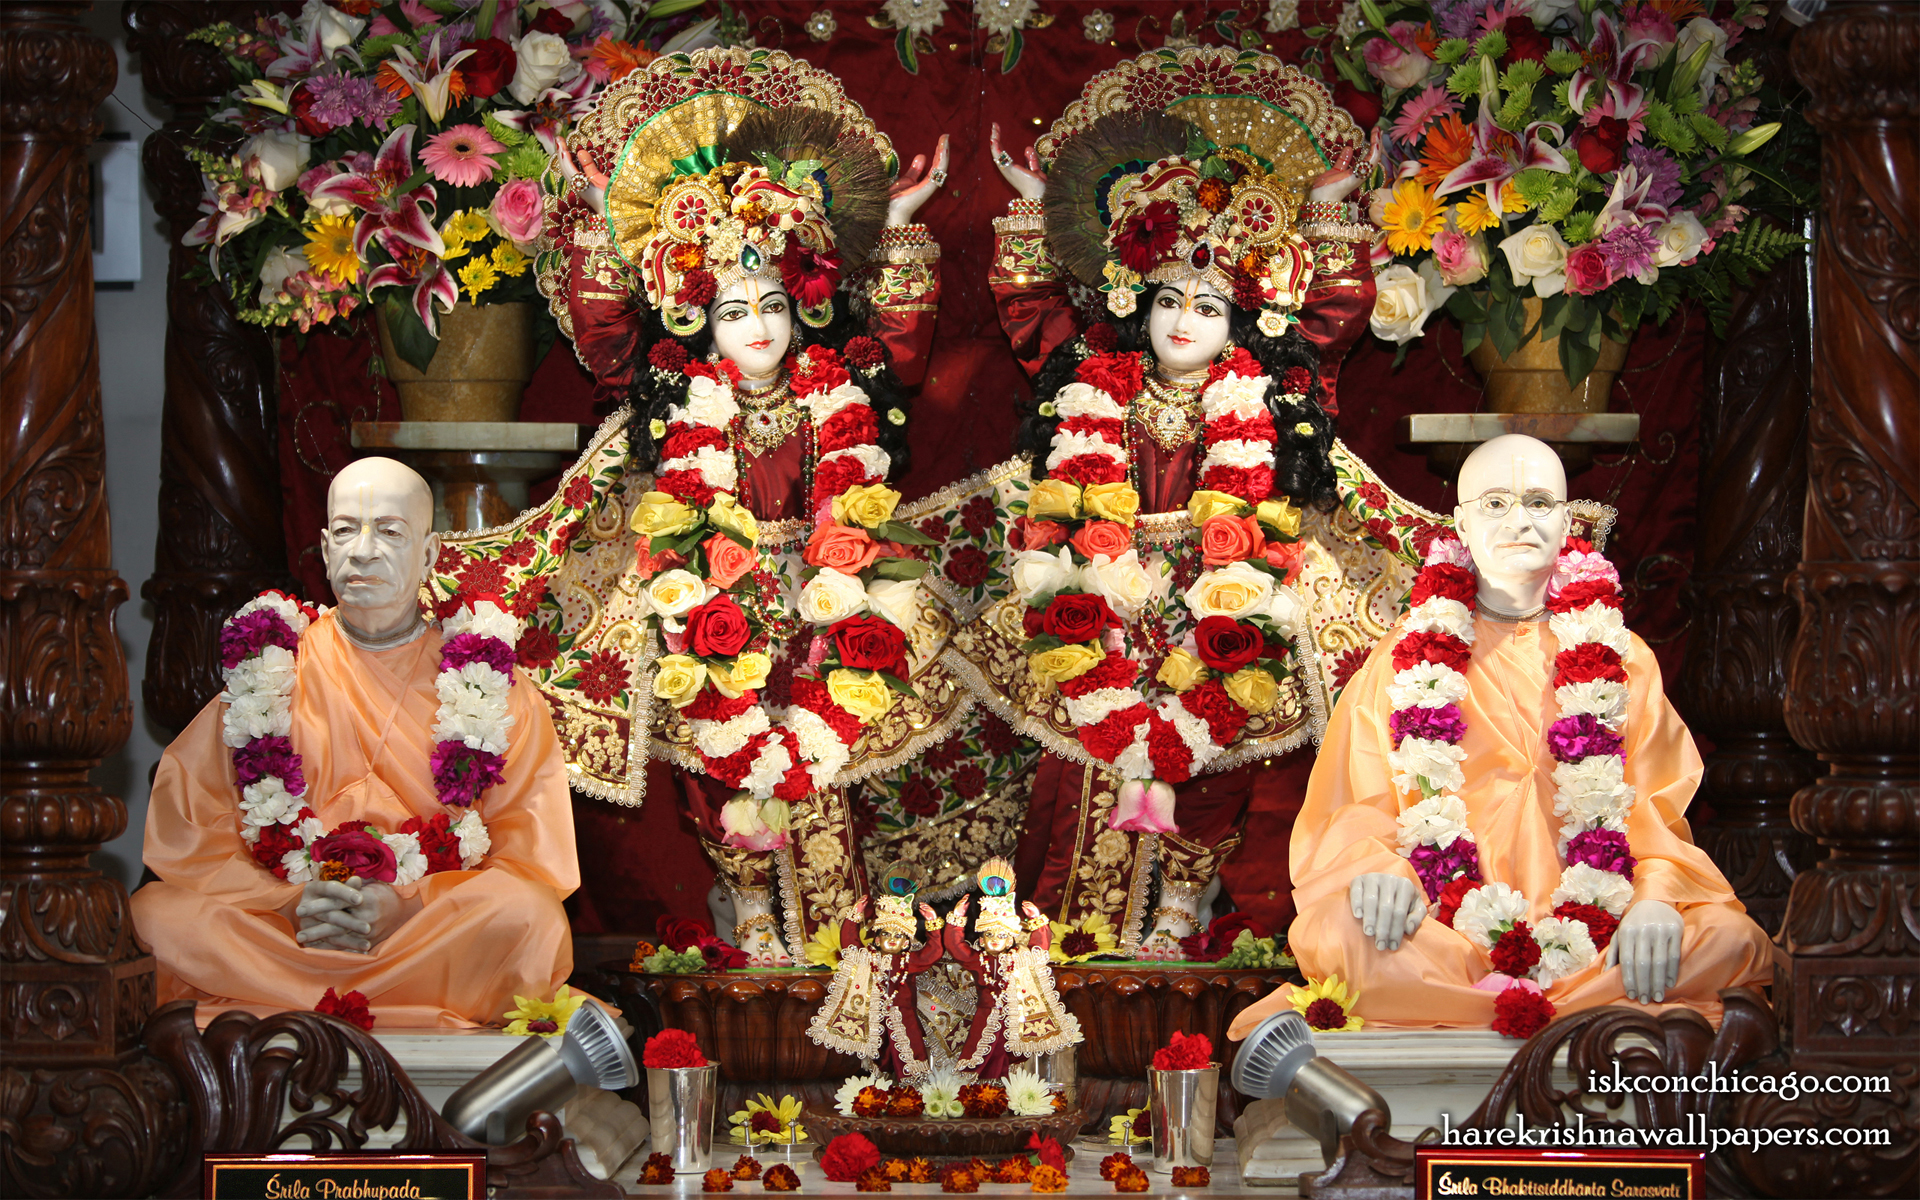 Sri Sri Gaura Nitai with Acharyas Wallpaper (001) Size 1920x1200 Download